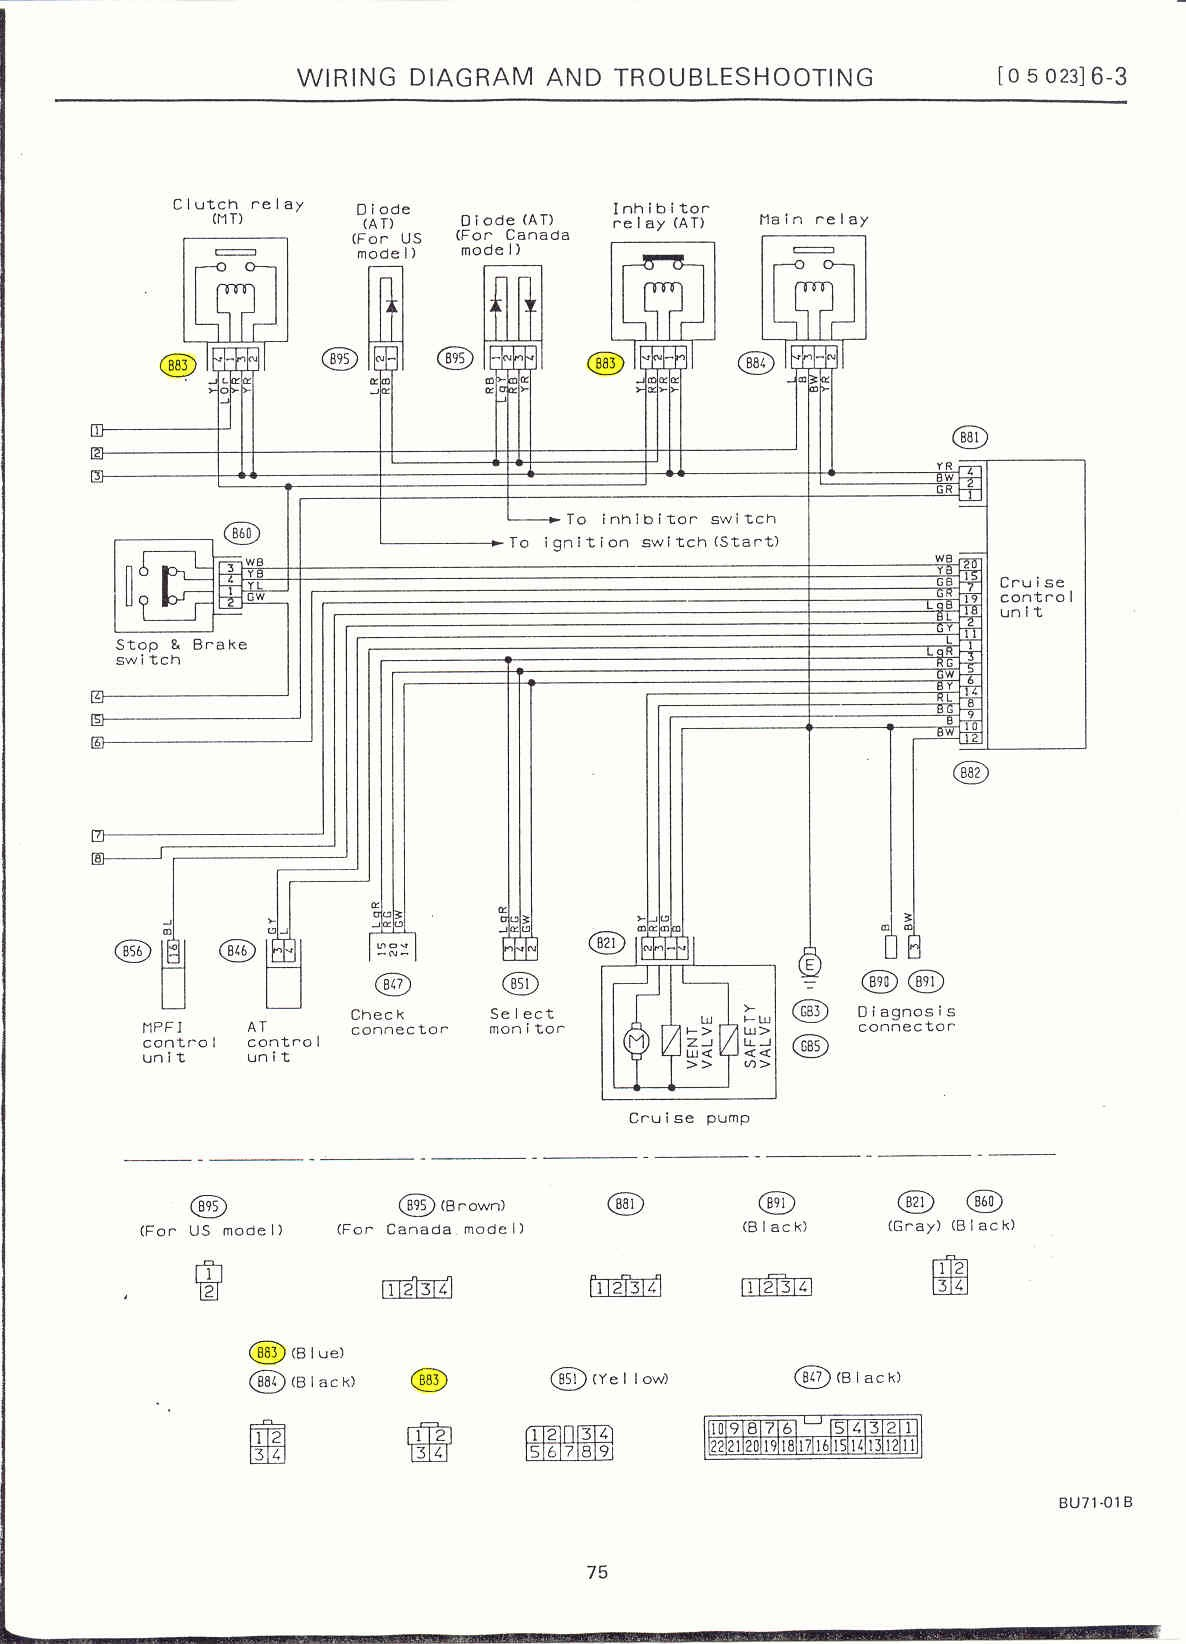 2000 plymouth neon parts diagram wiring library diagram z22000 plymouth neon engine diagram schematic wiring diagram 2000 plymouth neon lx 2000 plymouth neon engine